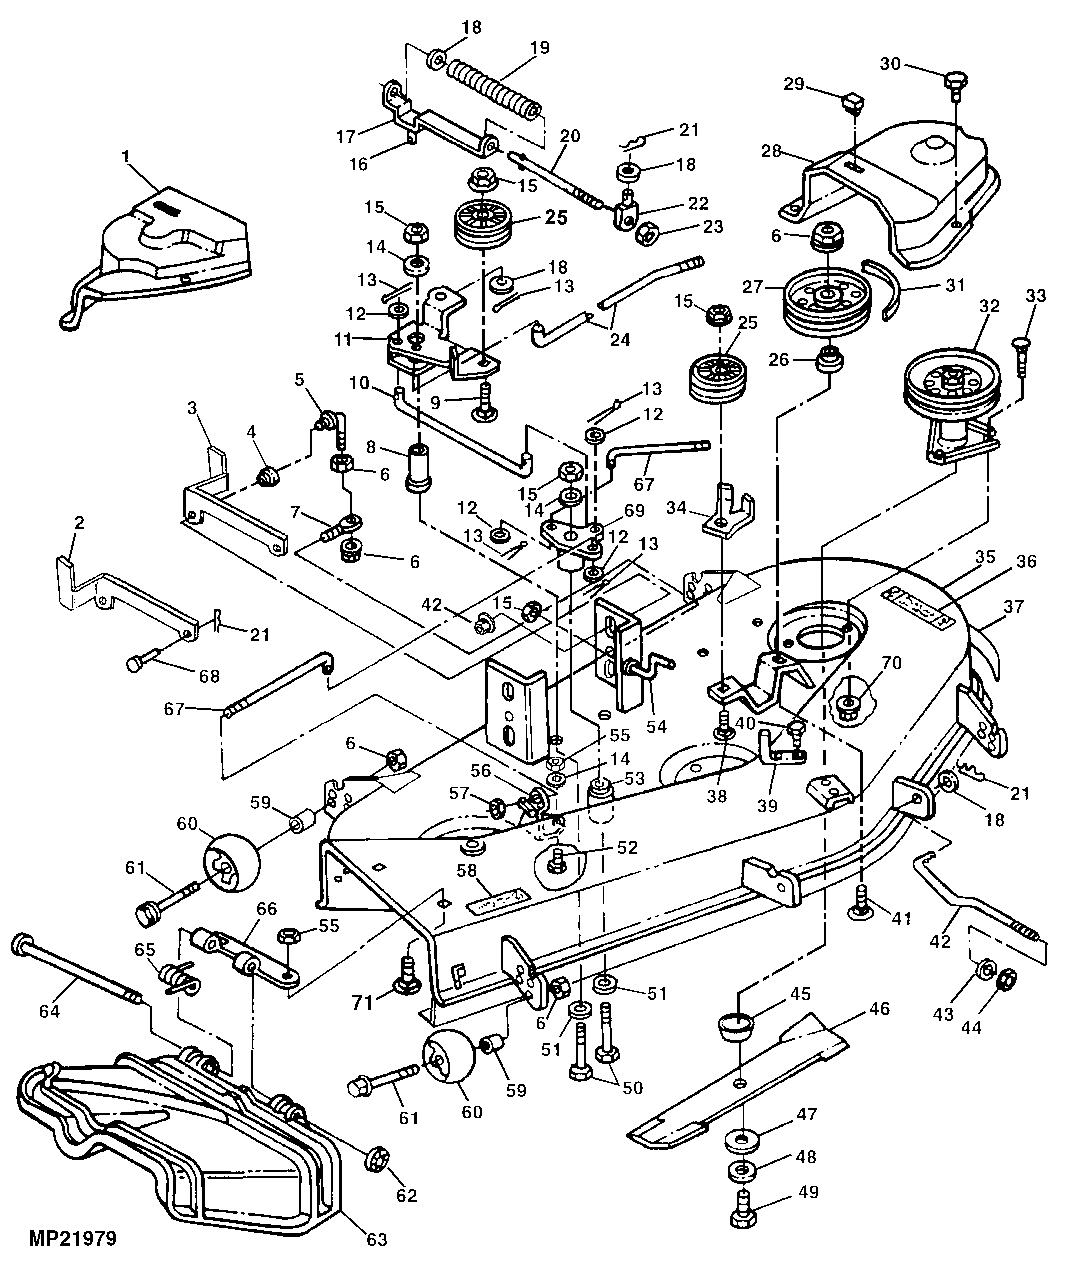 John Deere Lt133 Parts Www Lx255 Wiring Diagram Diagrams Images